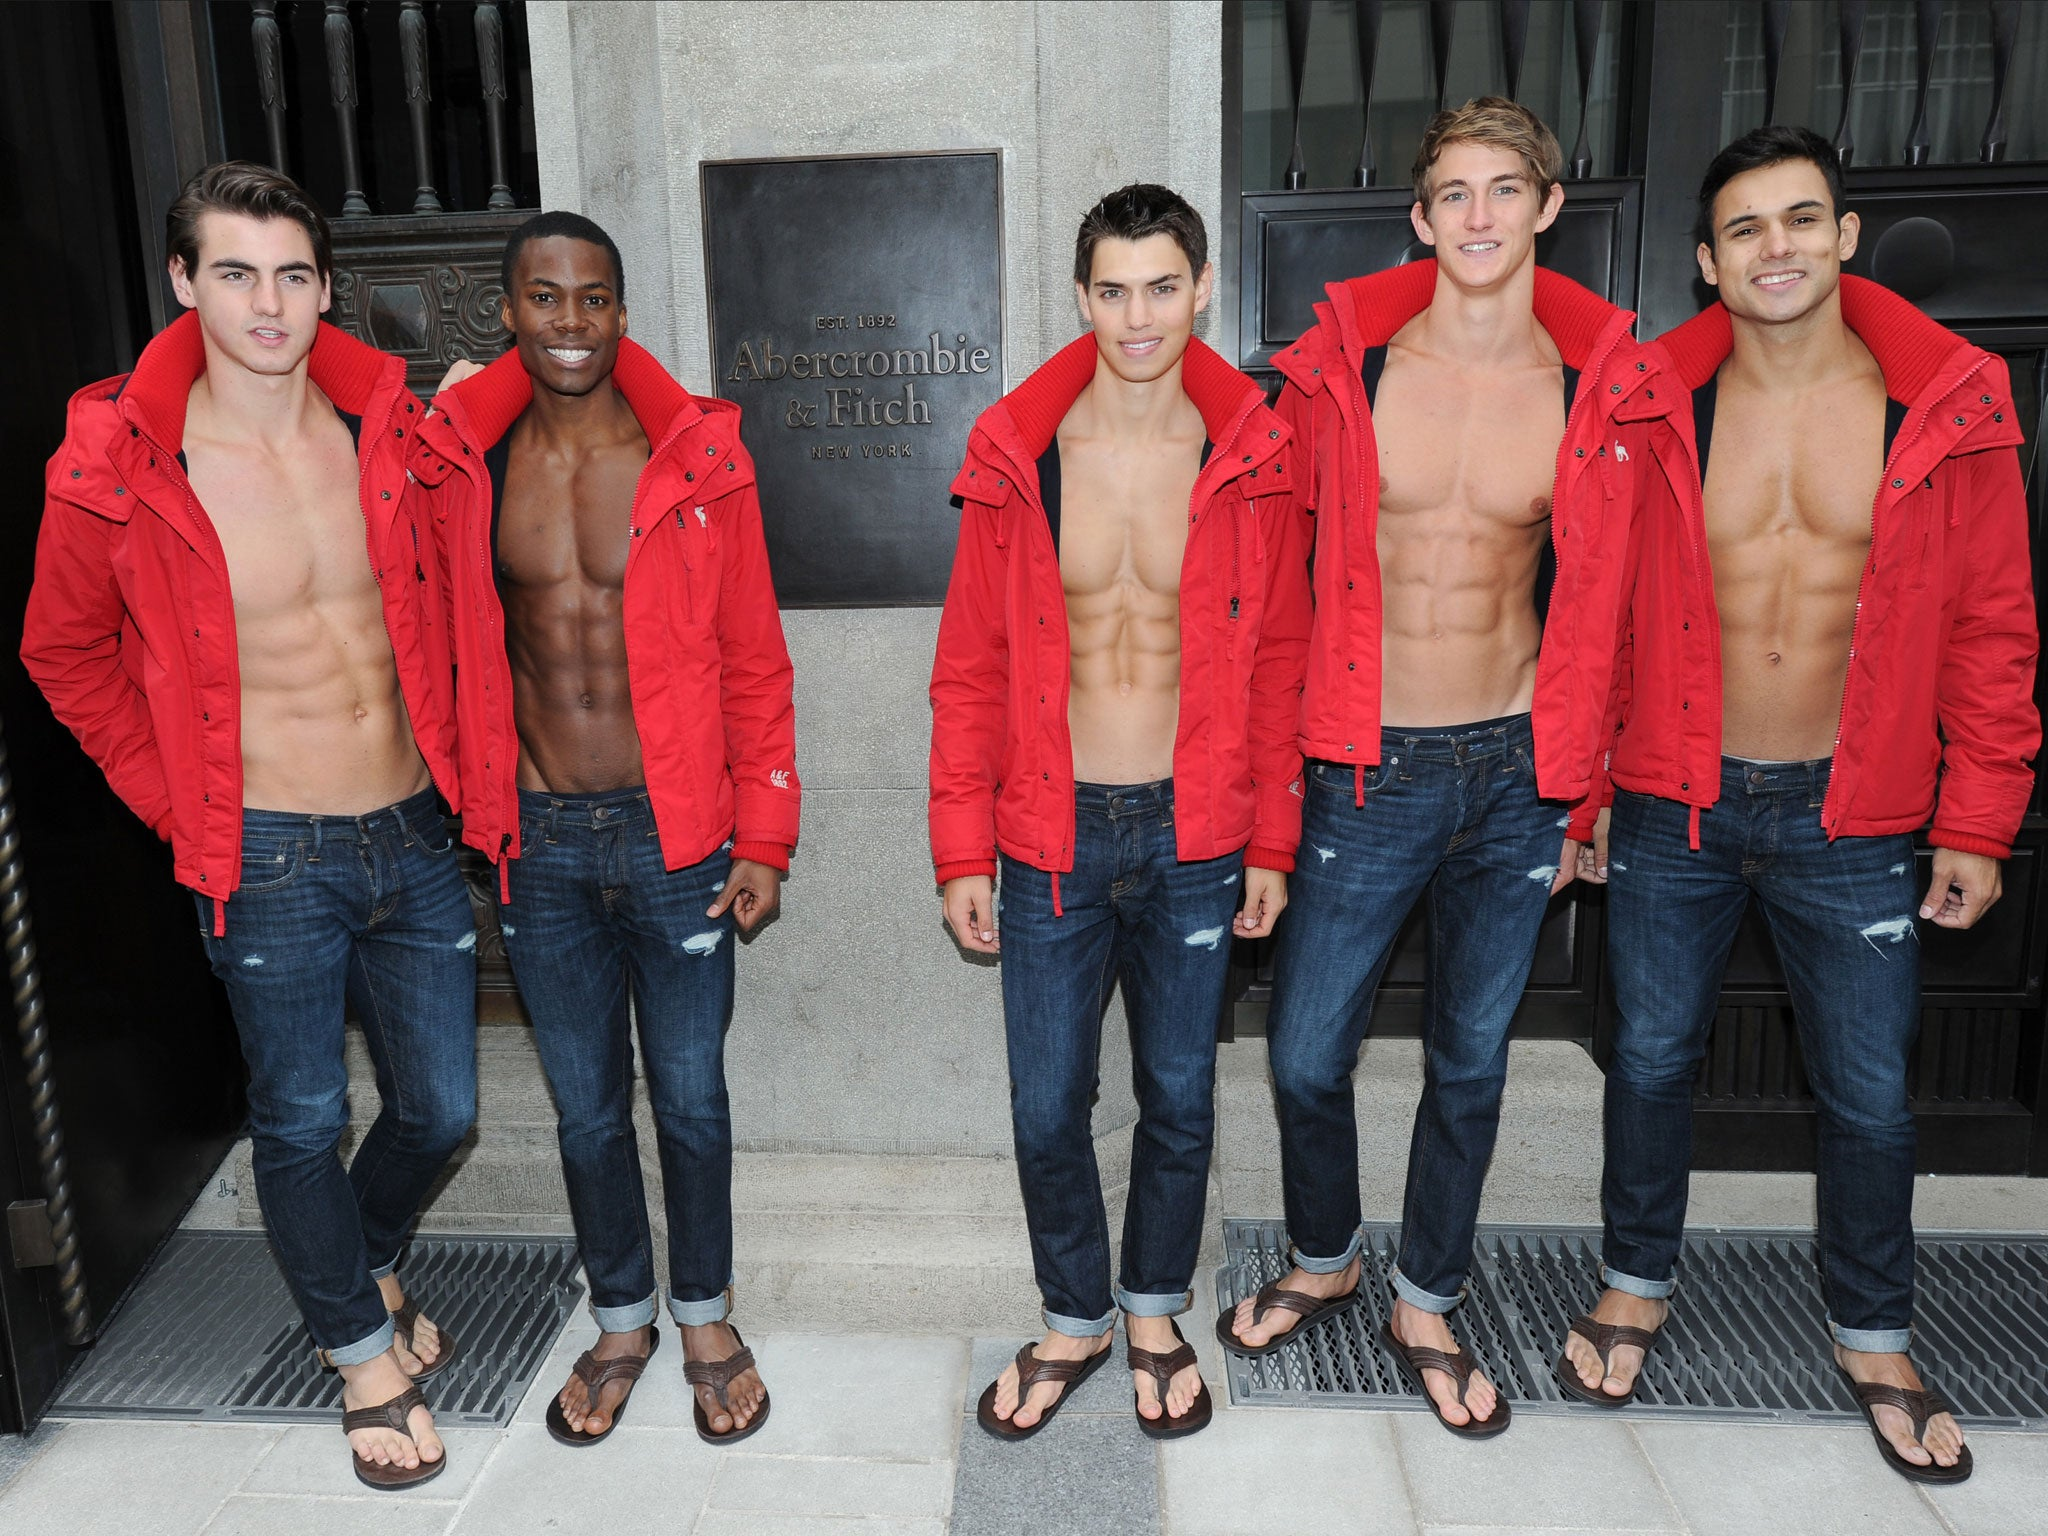 abercrombie and fitch paper Last week, a california federal judge certified a class-action suit for approximately 62,000 abercrombie & fitch employees who claim they were forced to purchase the company's clothes to wear on.